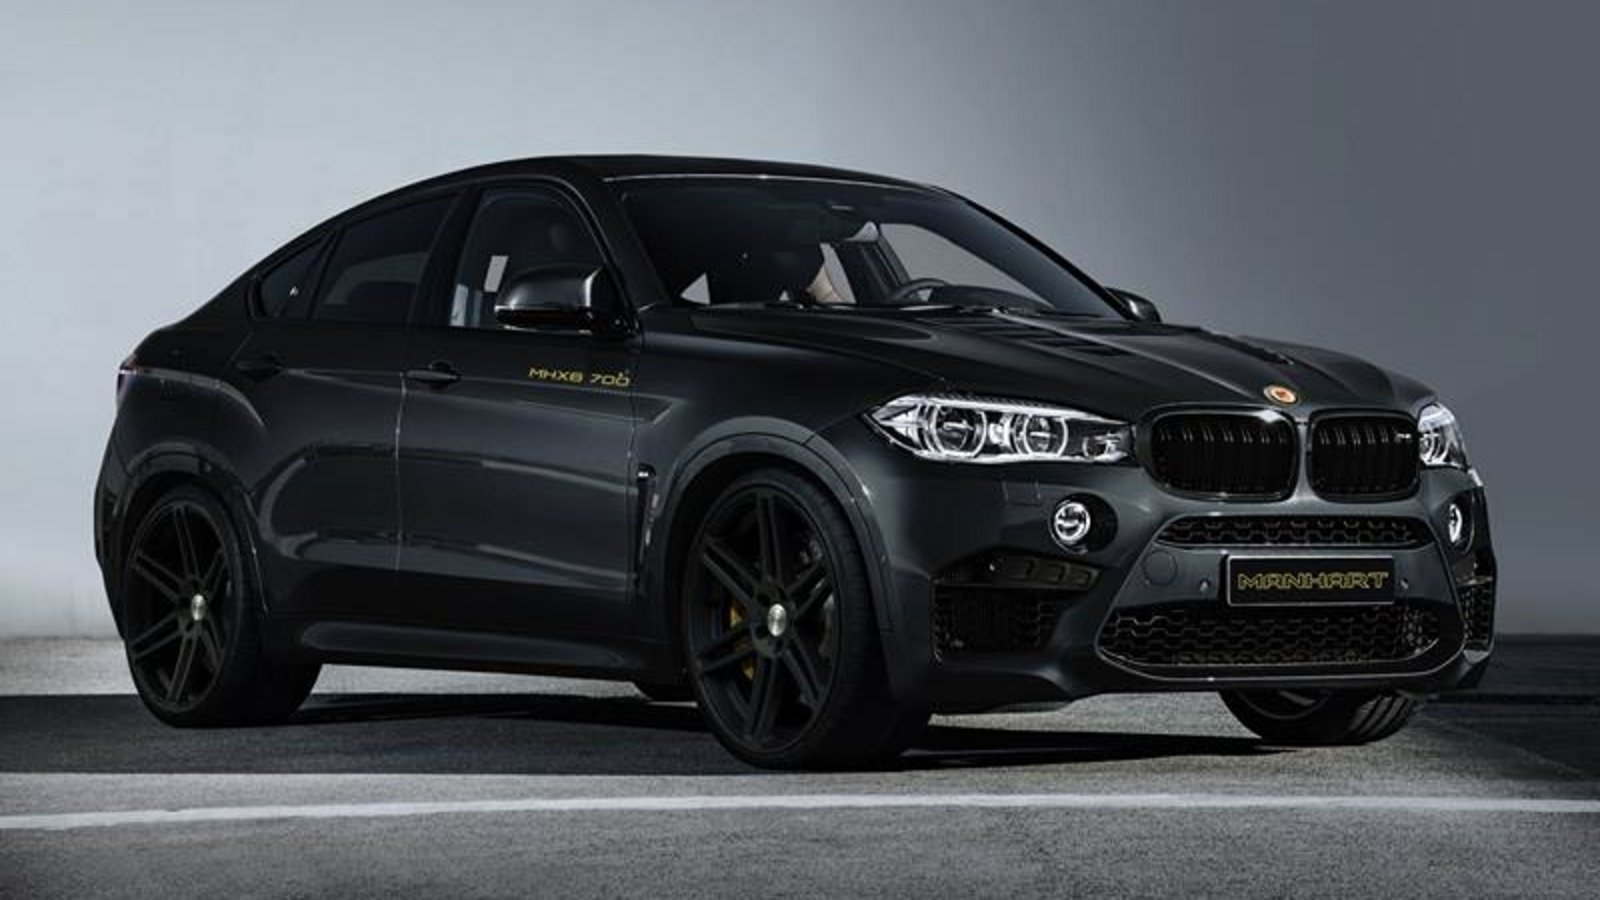 2016 Bmw X6 M Quot Mhx6 700 Quot By Manhart Review Top Speed